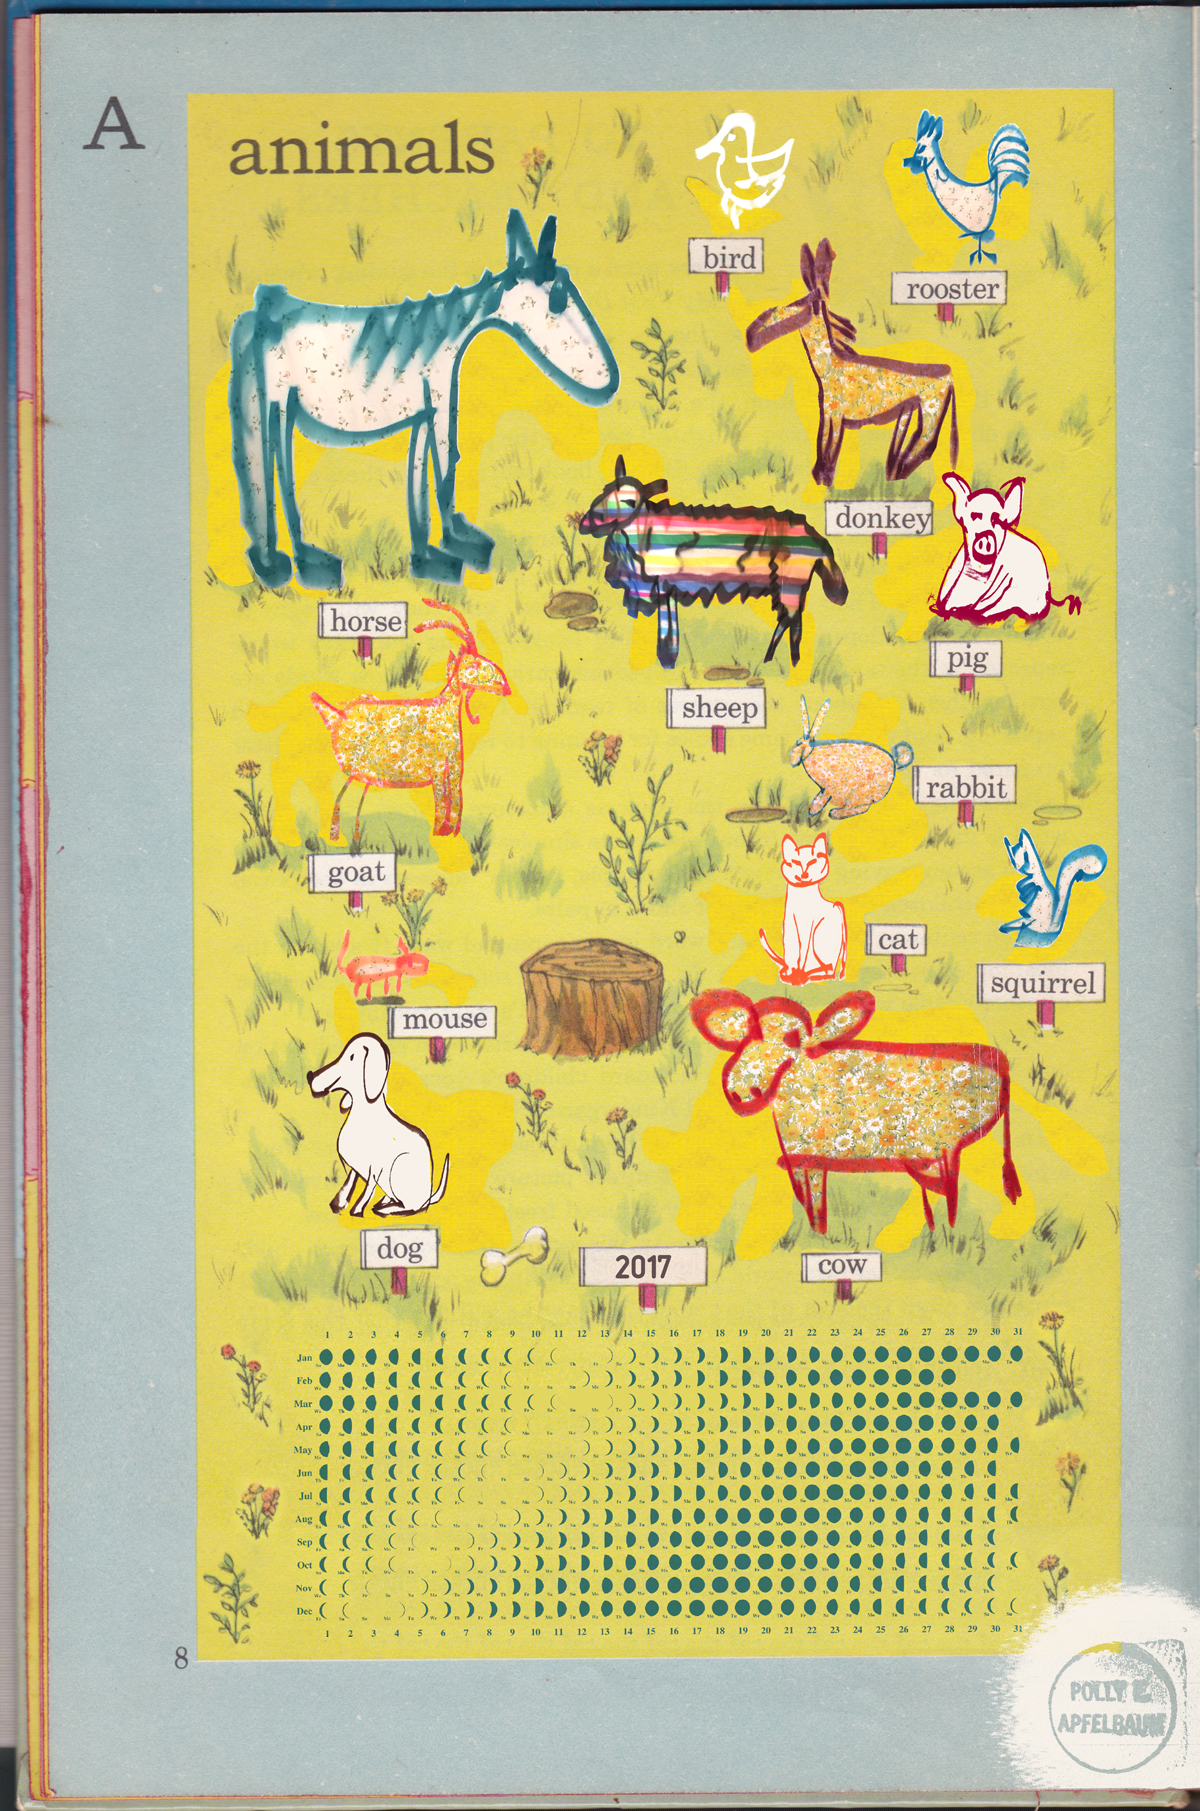 Line drawings on animals on yellow background.